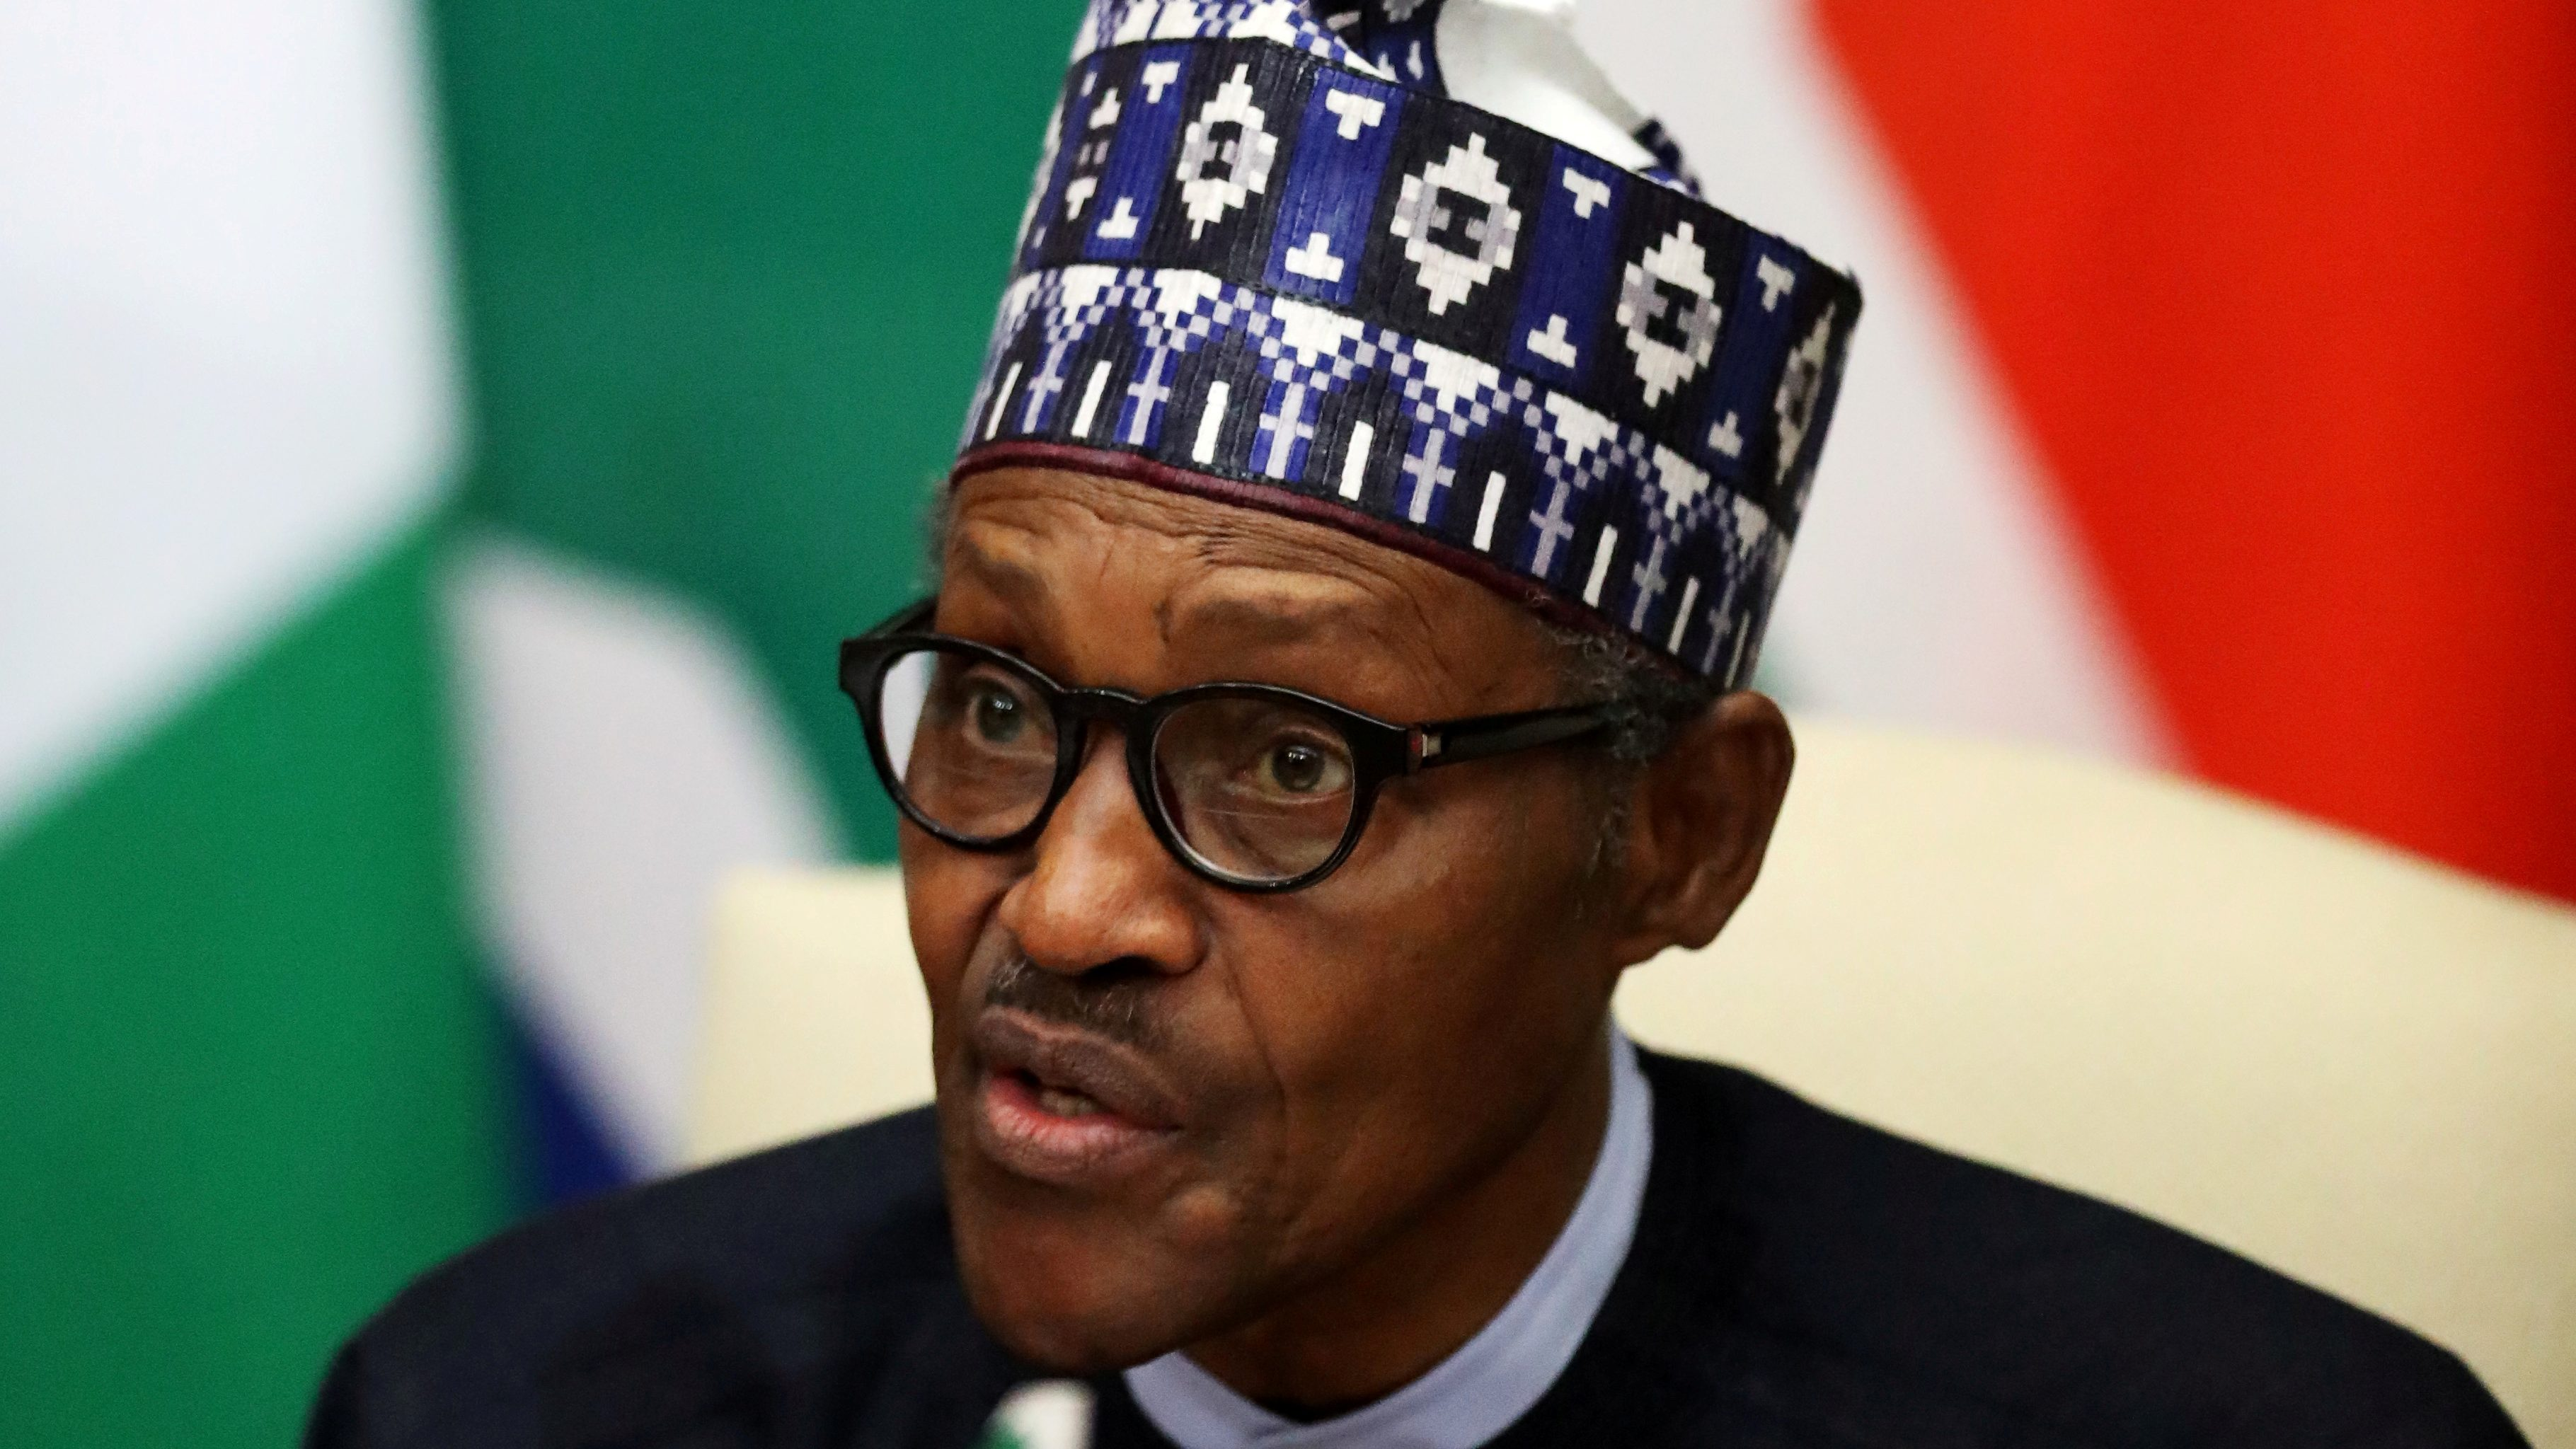 Nigeria's president Buhari promises visas on arrival for all African visitors in 2020